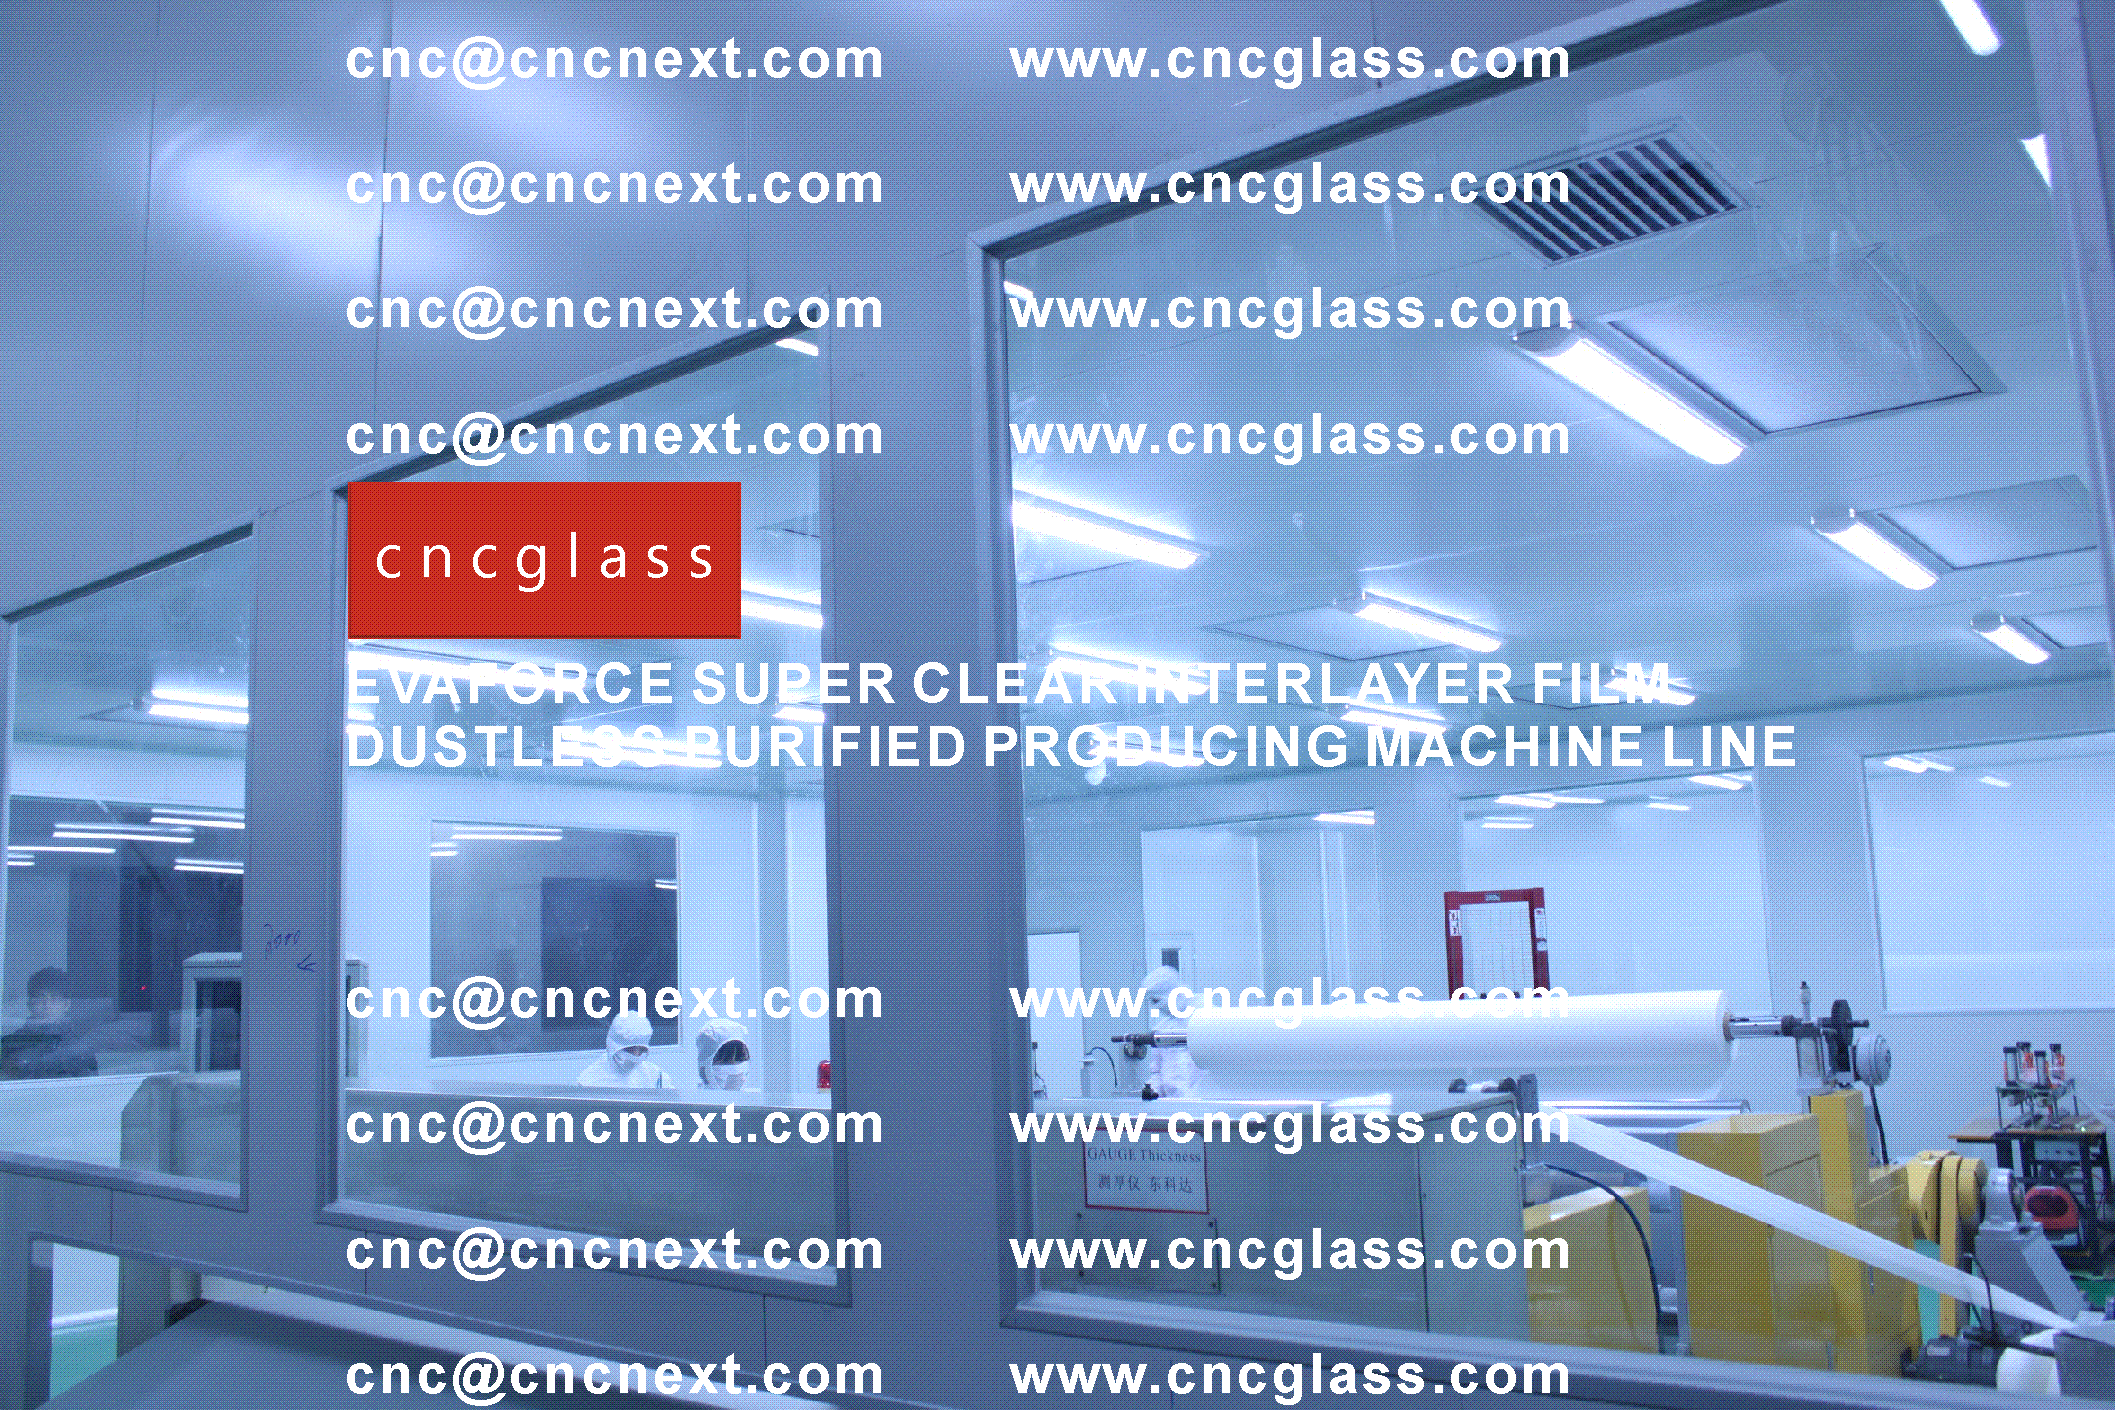 011 EVAFORCE SUPER CLEAR INTERLAYER FILM PRODUCING MACHINE LINE